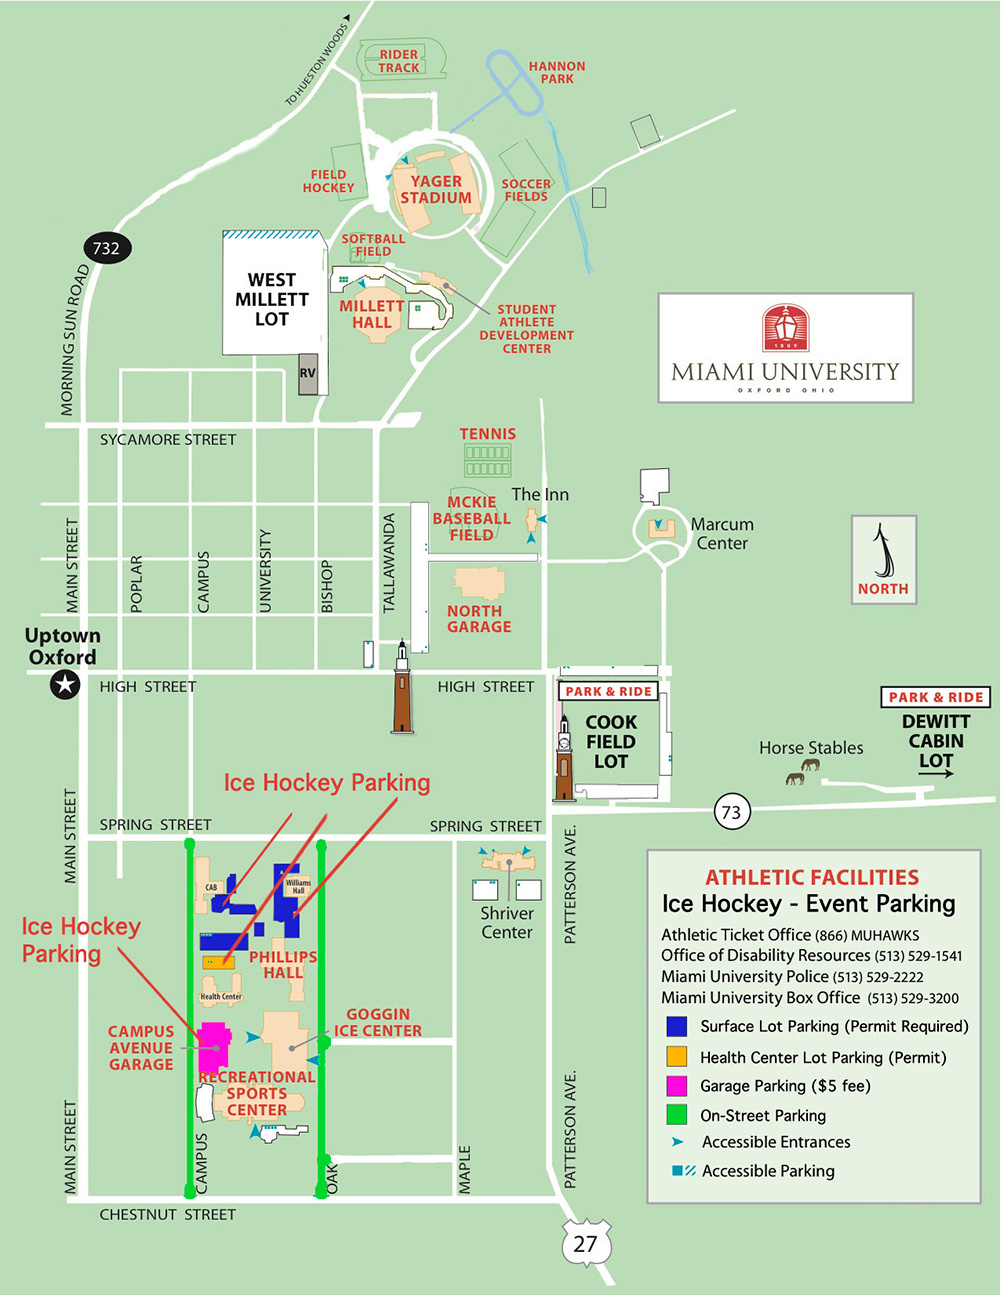 miami hamilton campus map Miami Redhawks Men S Ice Hockey Miami University Redhawks miami hamilton campus map